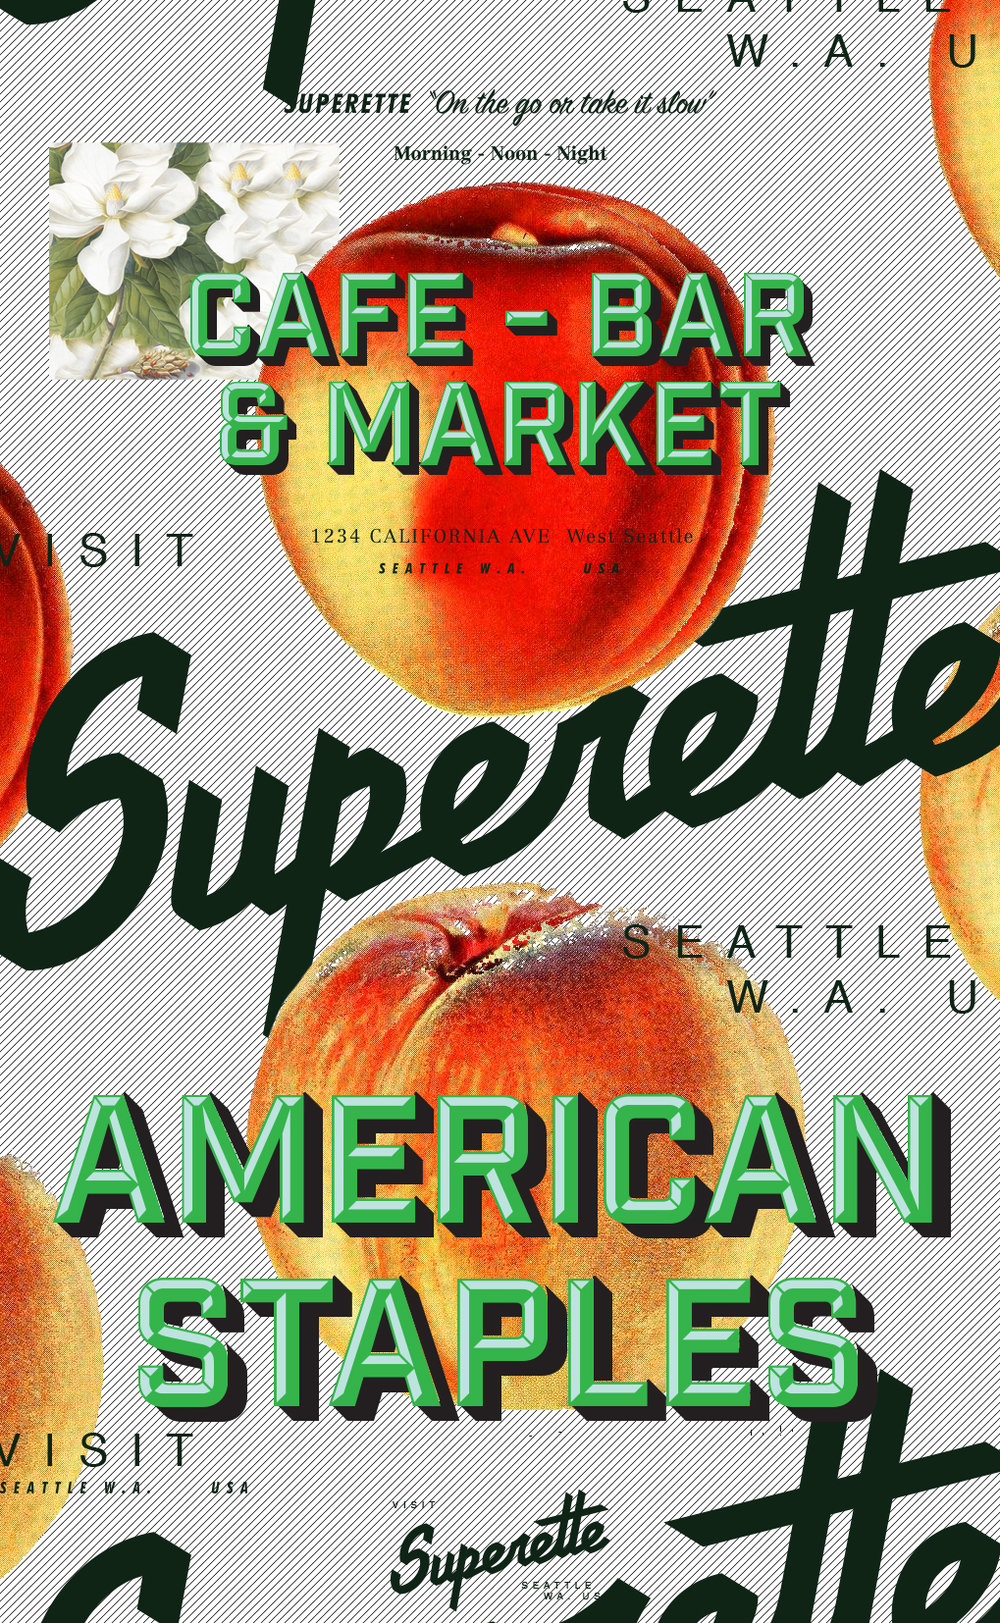 Supertte_Peaches_pattern_poster.jpg